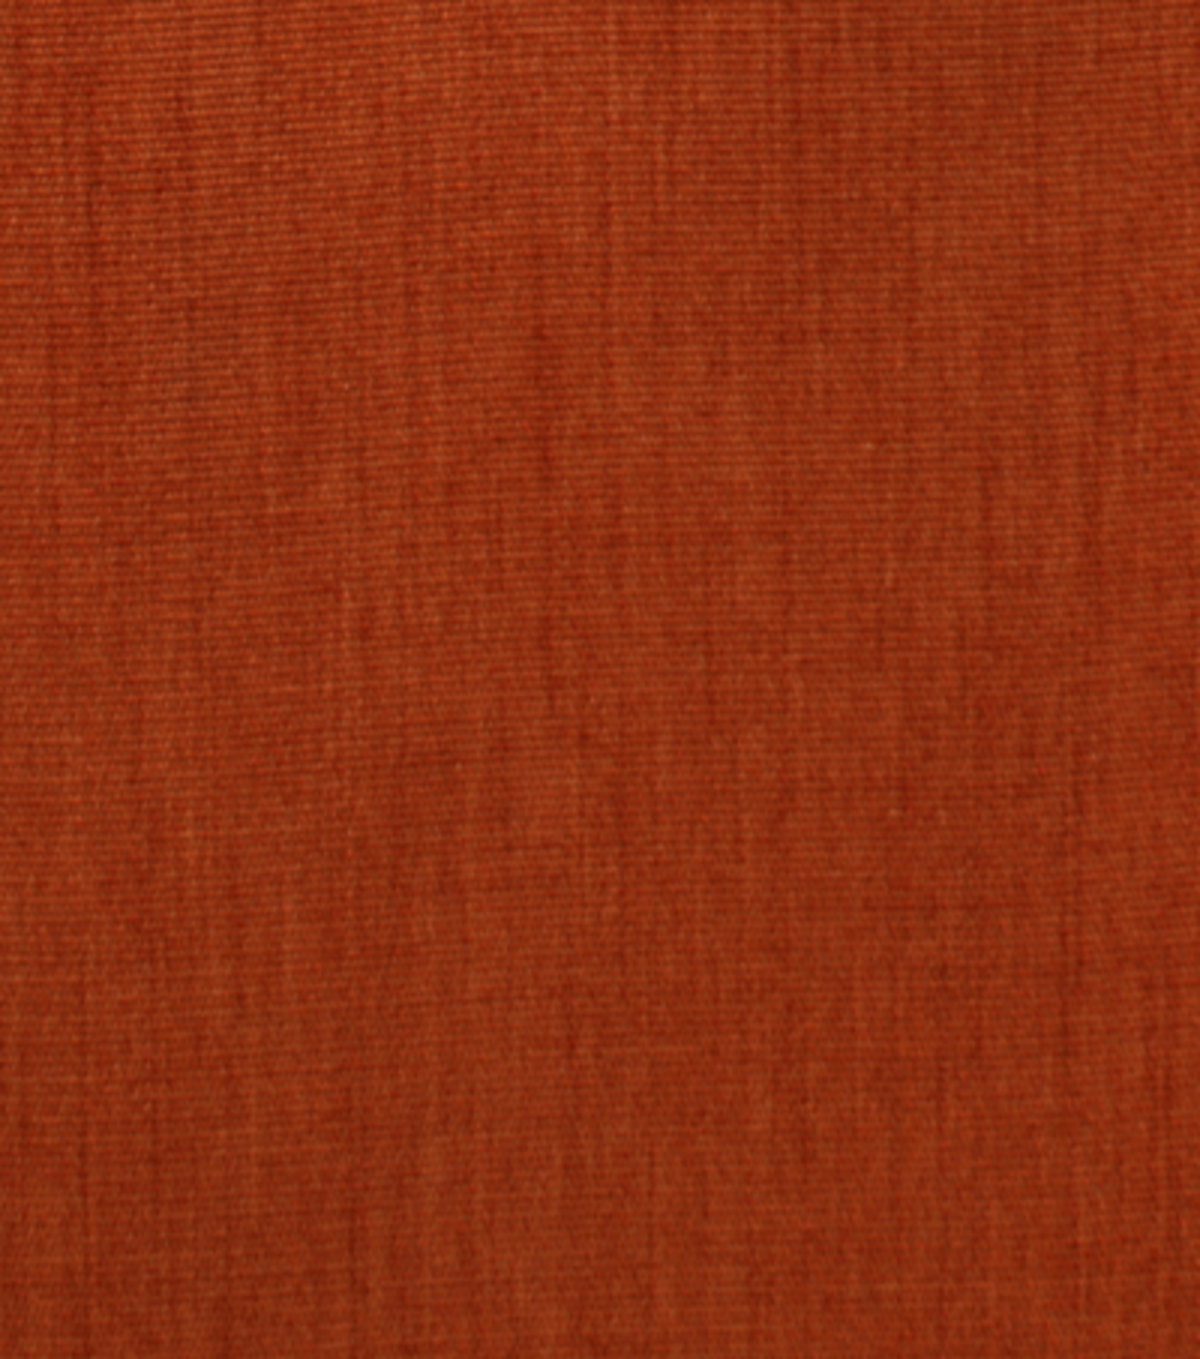 Home Decor 8\u0022x8\u0022 Fabric Swatch-Covington Ibiza 342 Flame